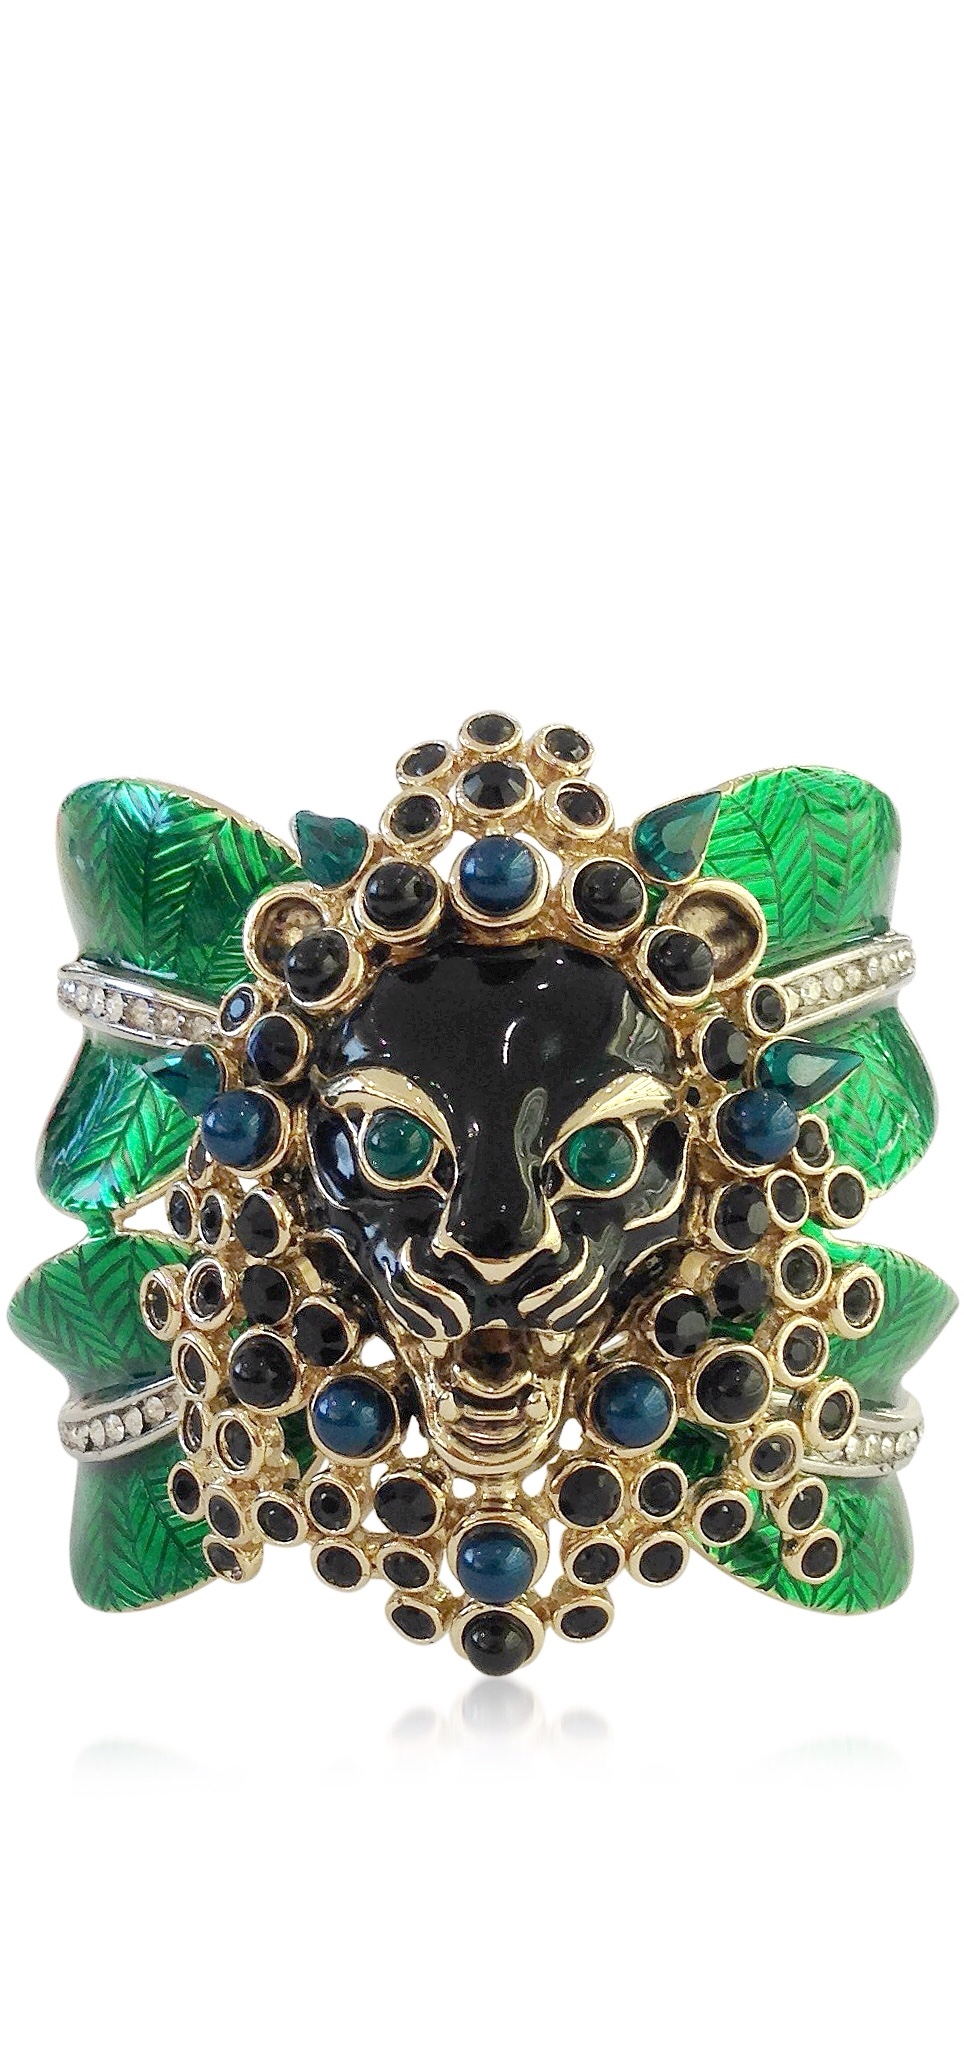 {Spring Statement Jewelry 2015} Crystal Animal Kingdom Bangle Bracelet By ROBERTO CAVALLI